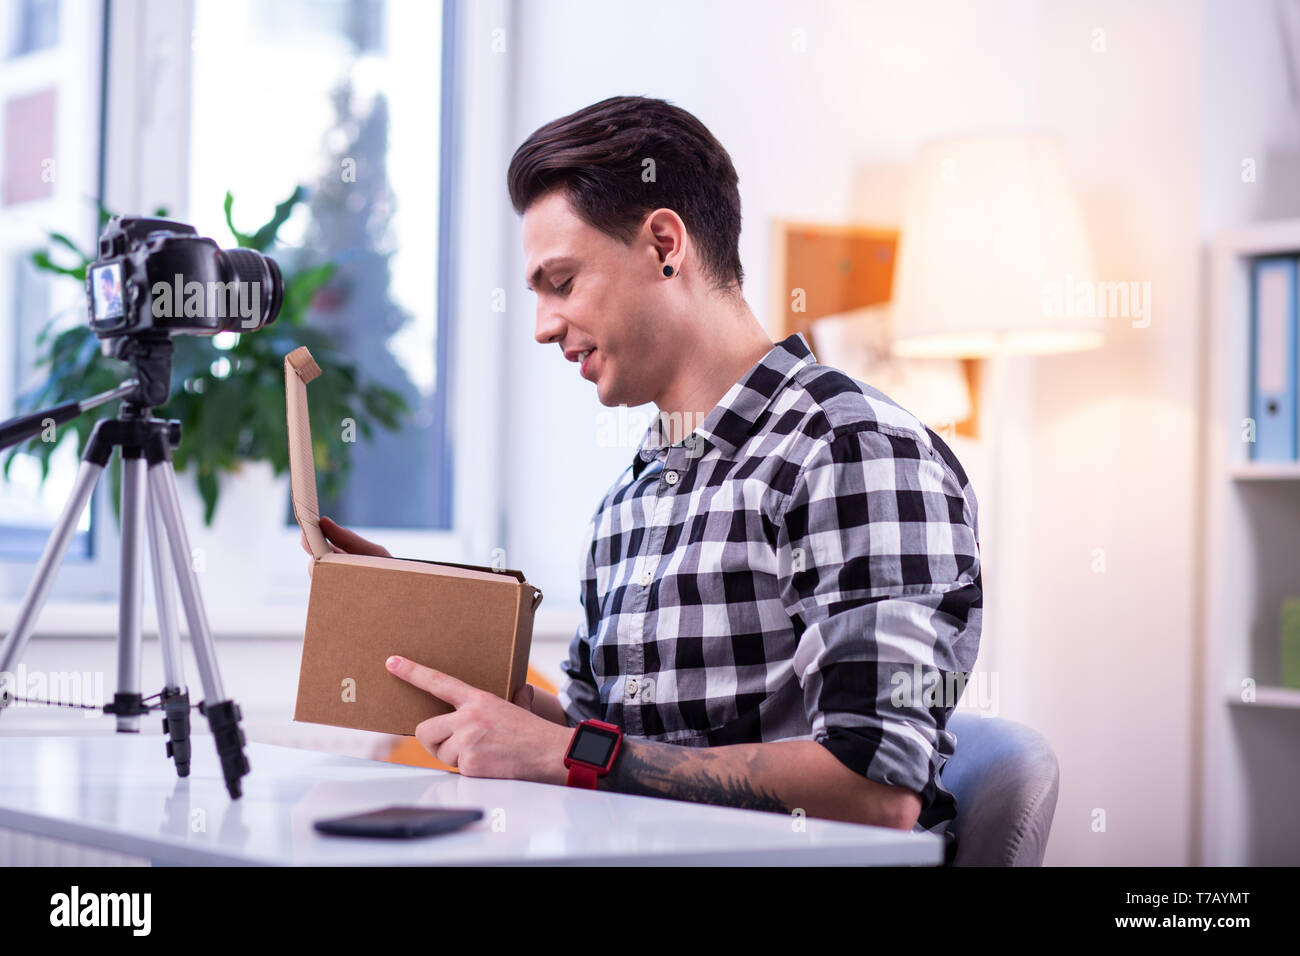 Curious short-haired stylish guy opening box with new product - Stock Image